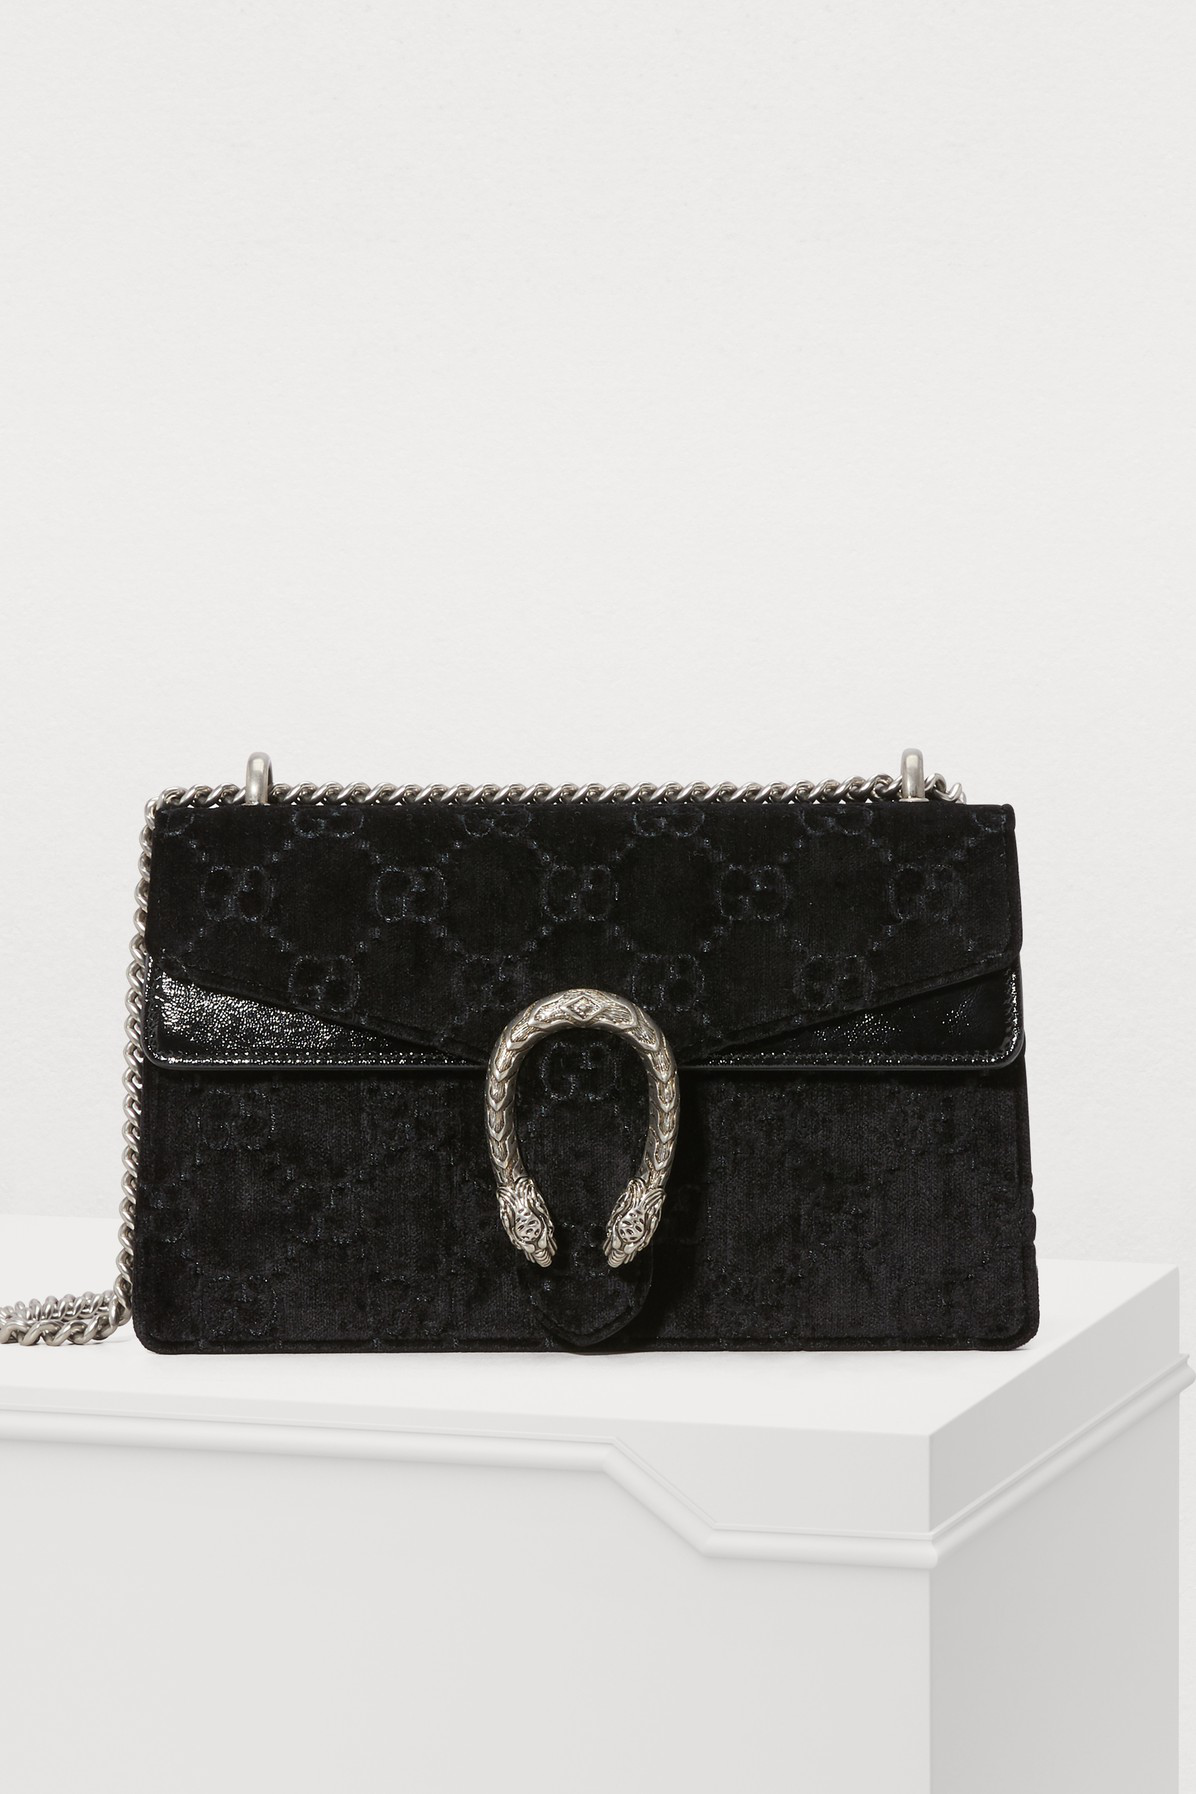 8384f1d4665 Gucci Dionysus Small Velvet Gg Supreme Shoulder Bag